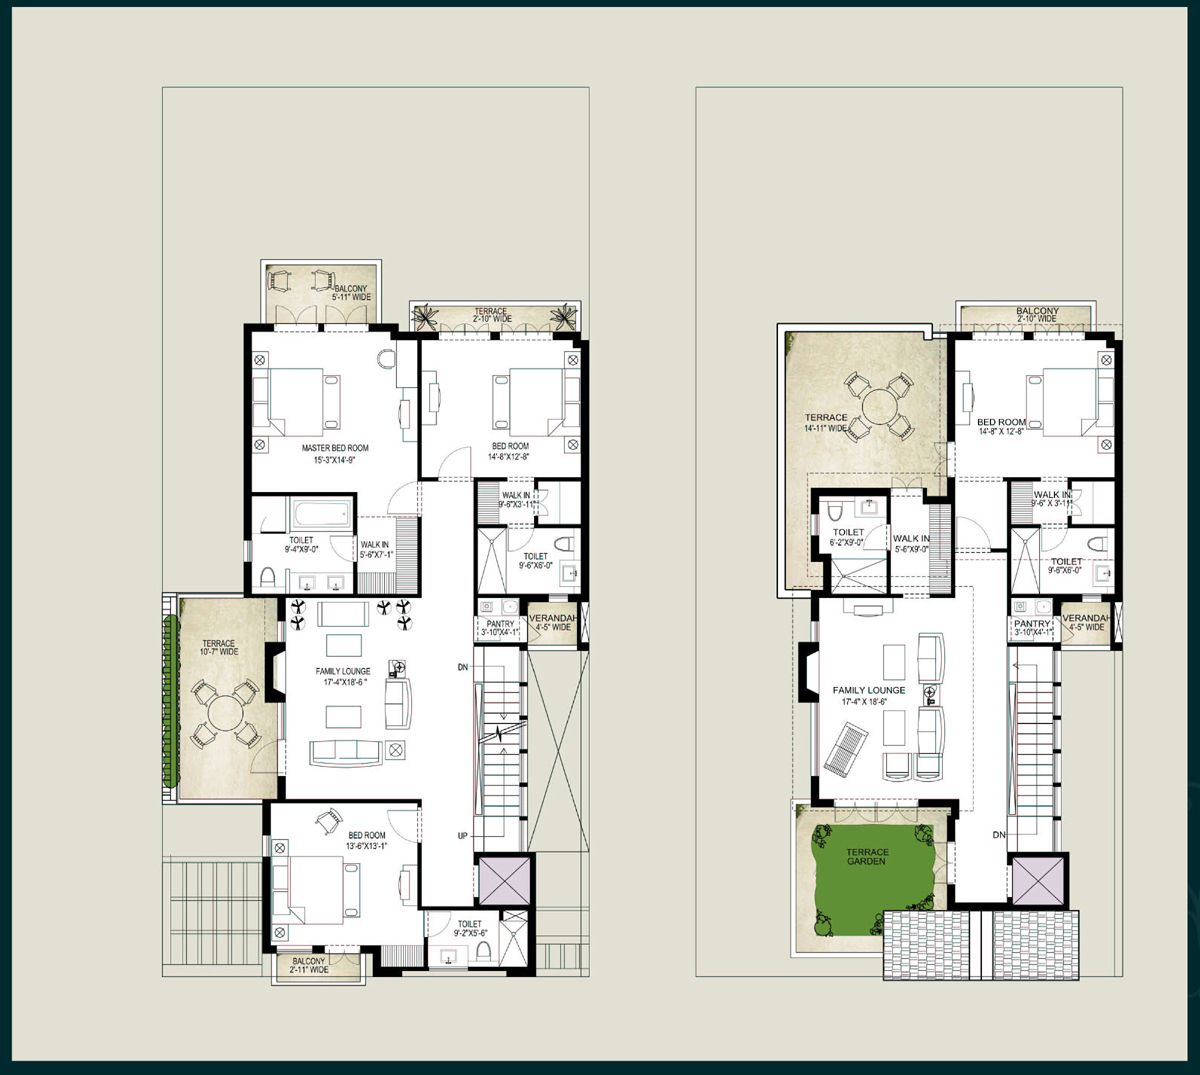 luxury house design floor plans - Luxury Floor Plans